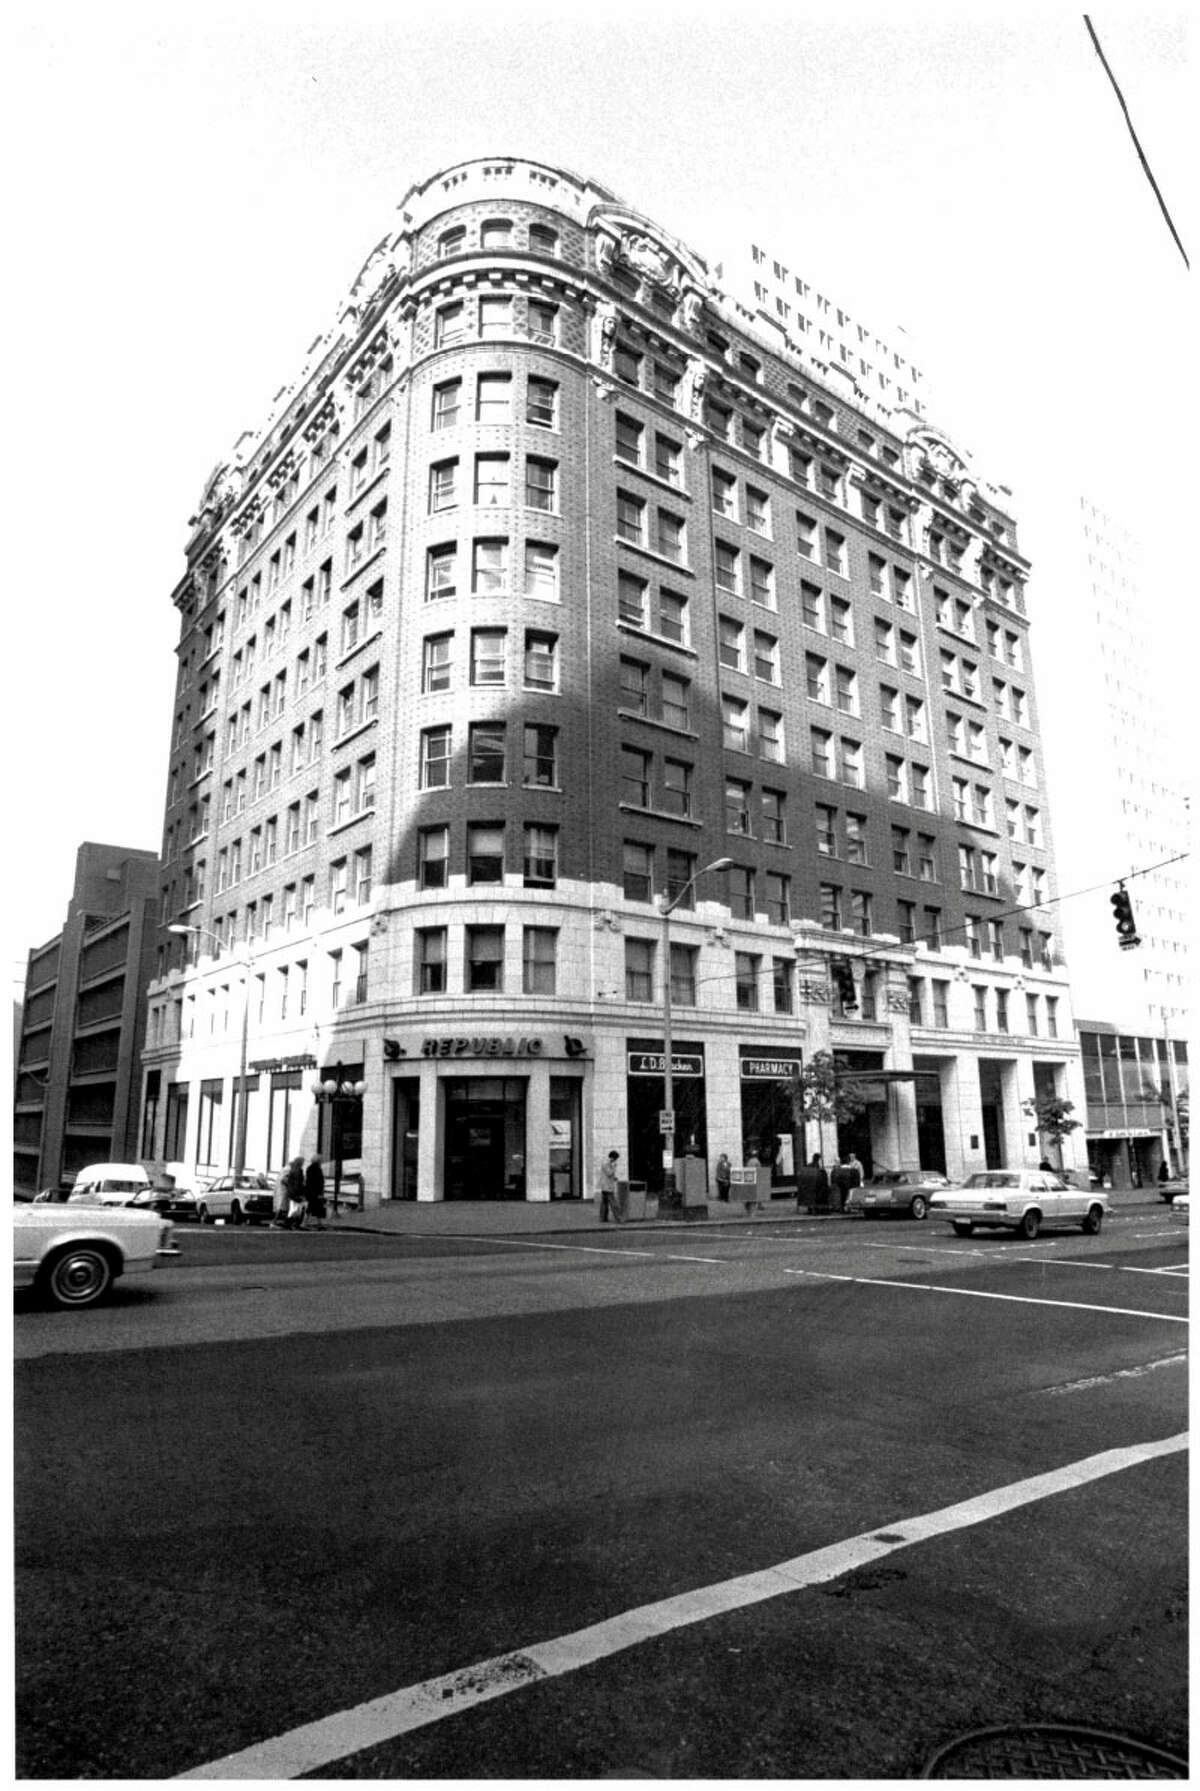 Cobb Building -- 1301-1309 4th Ave. - Added to the National Register of Historic Places on Aug. 3, 1984.